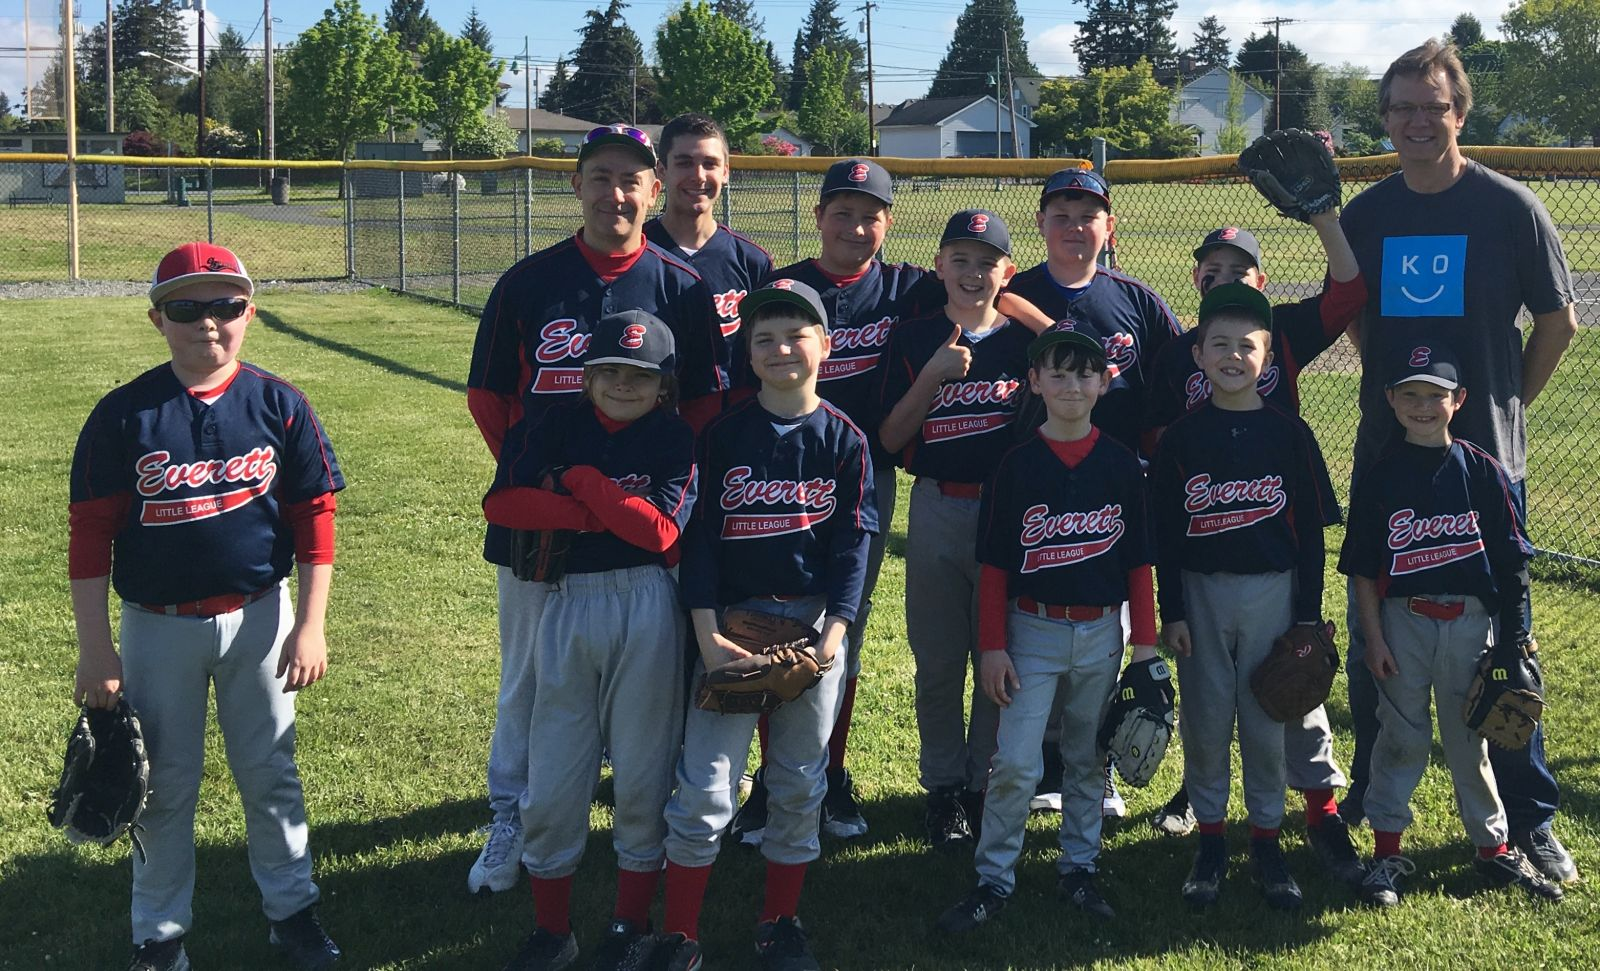 Look for us a local sports events in the community. Last spring, we sponsored the Everett Little League and had a great time cheering them on. Play ball!